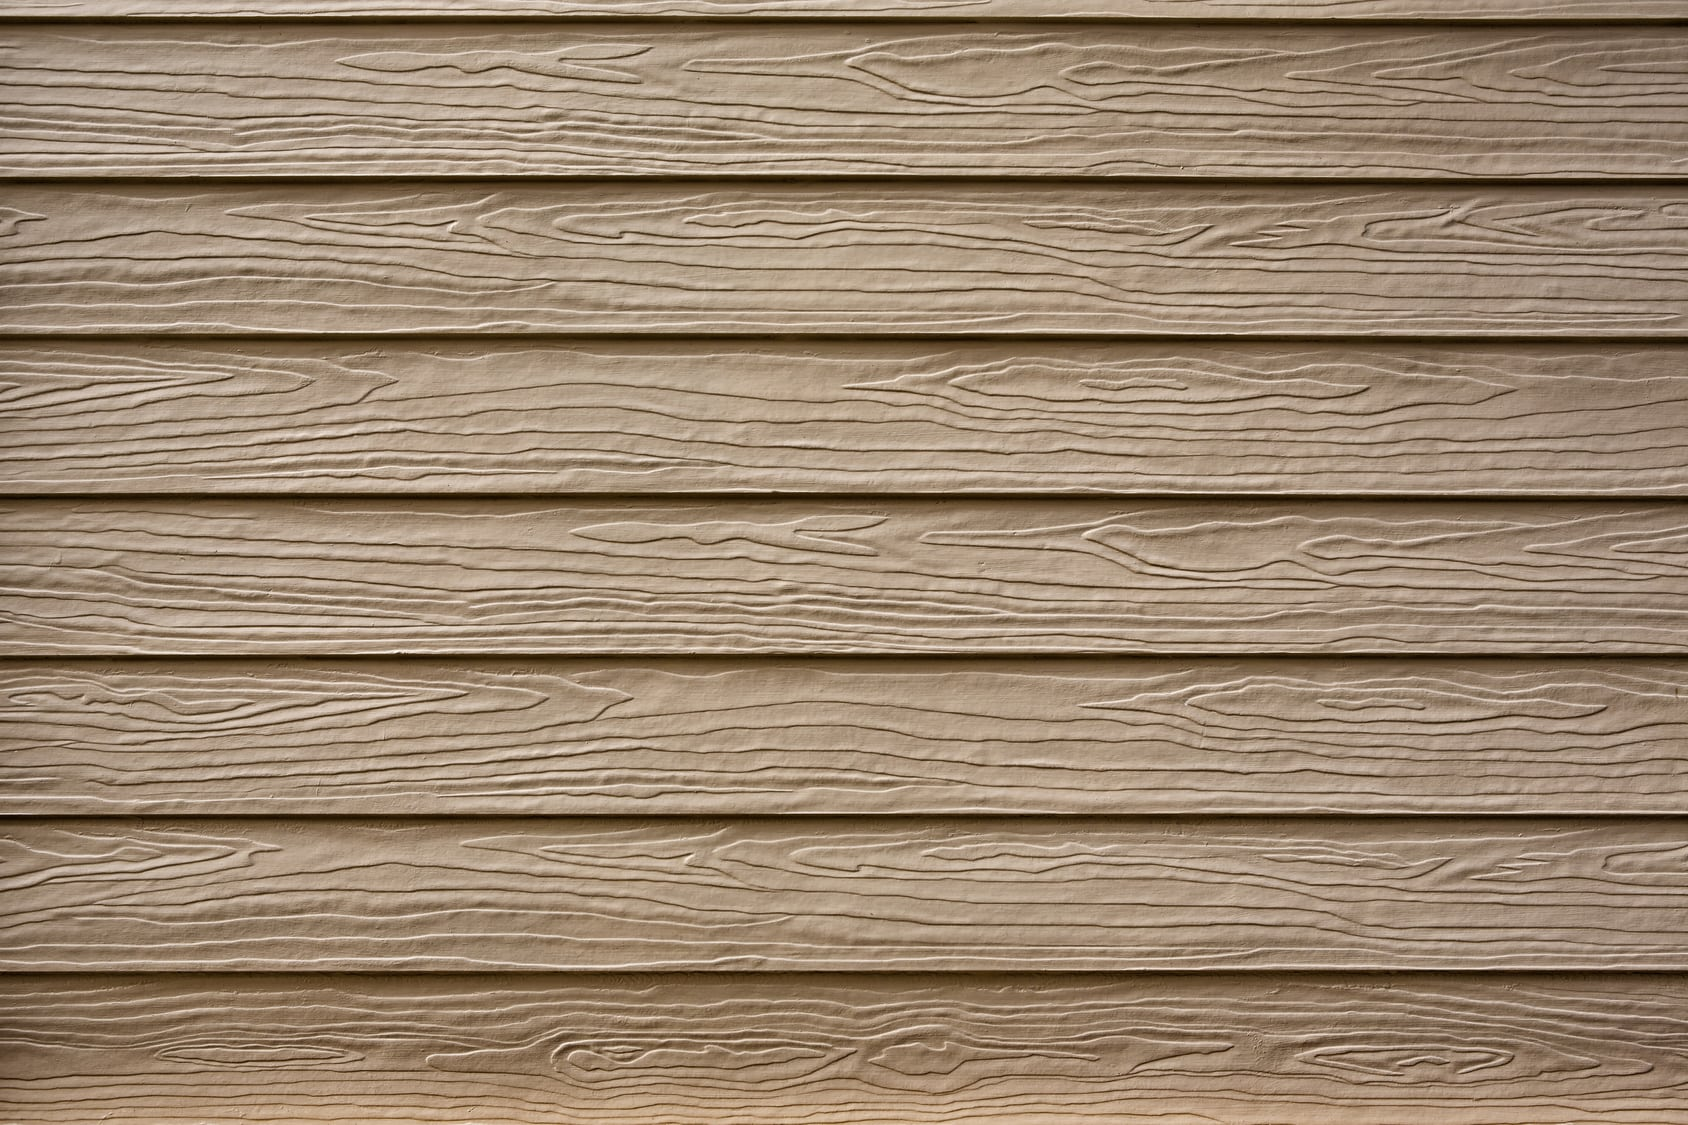 Choosing Your Siding Hardieplank Vs Everlast Blue Nail Nj